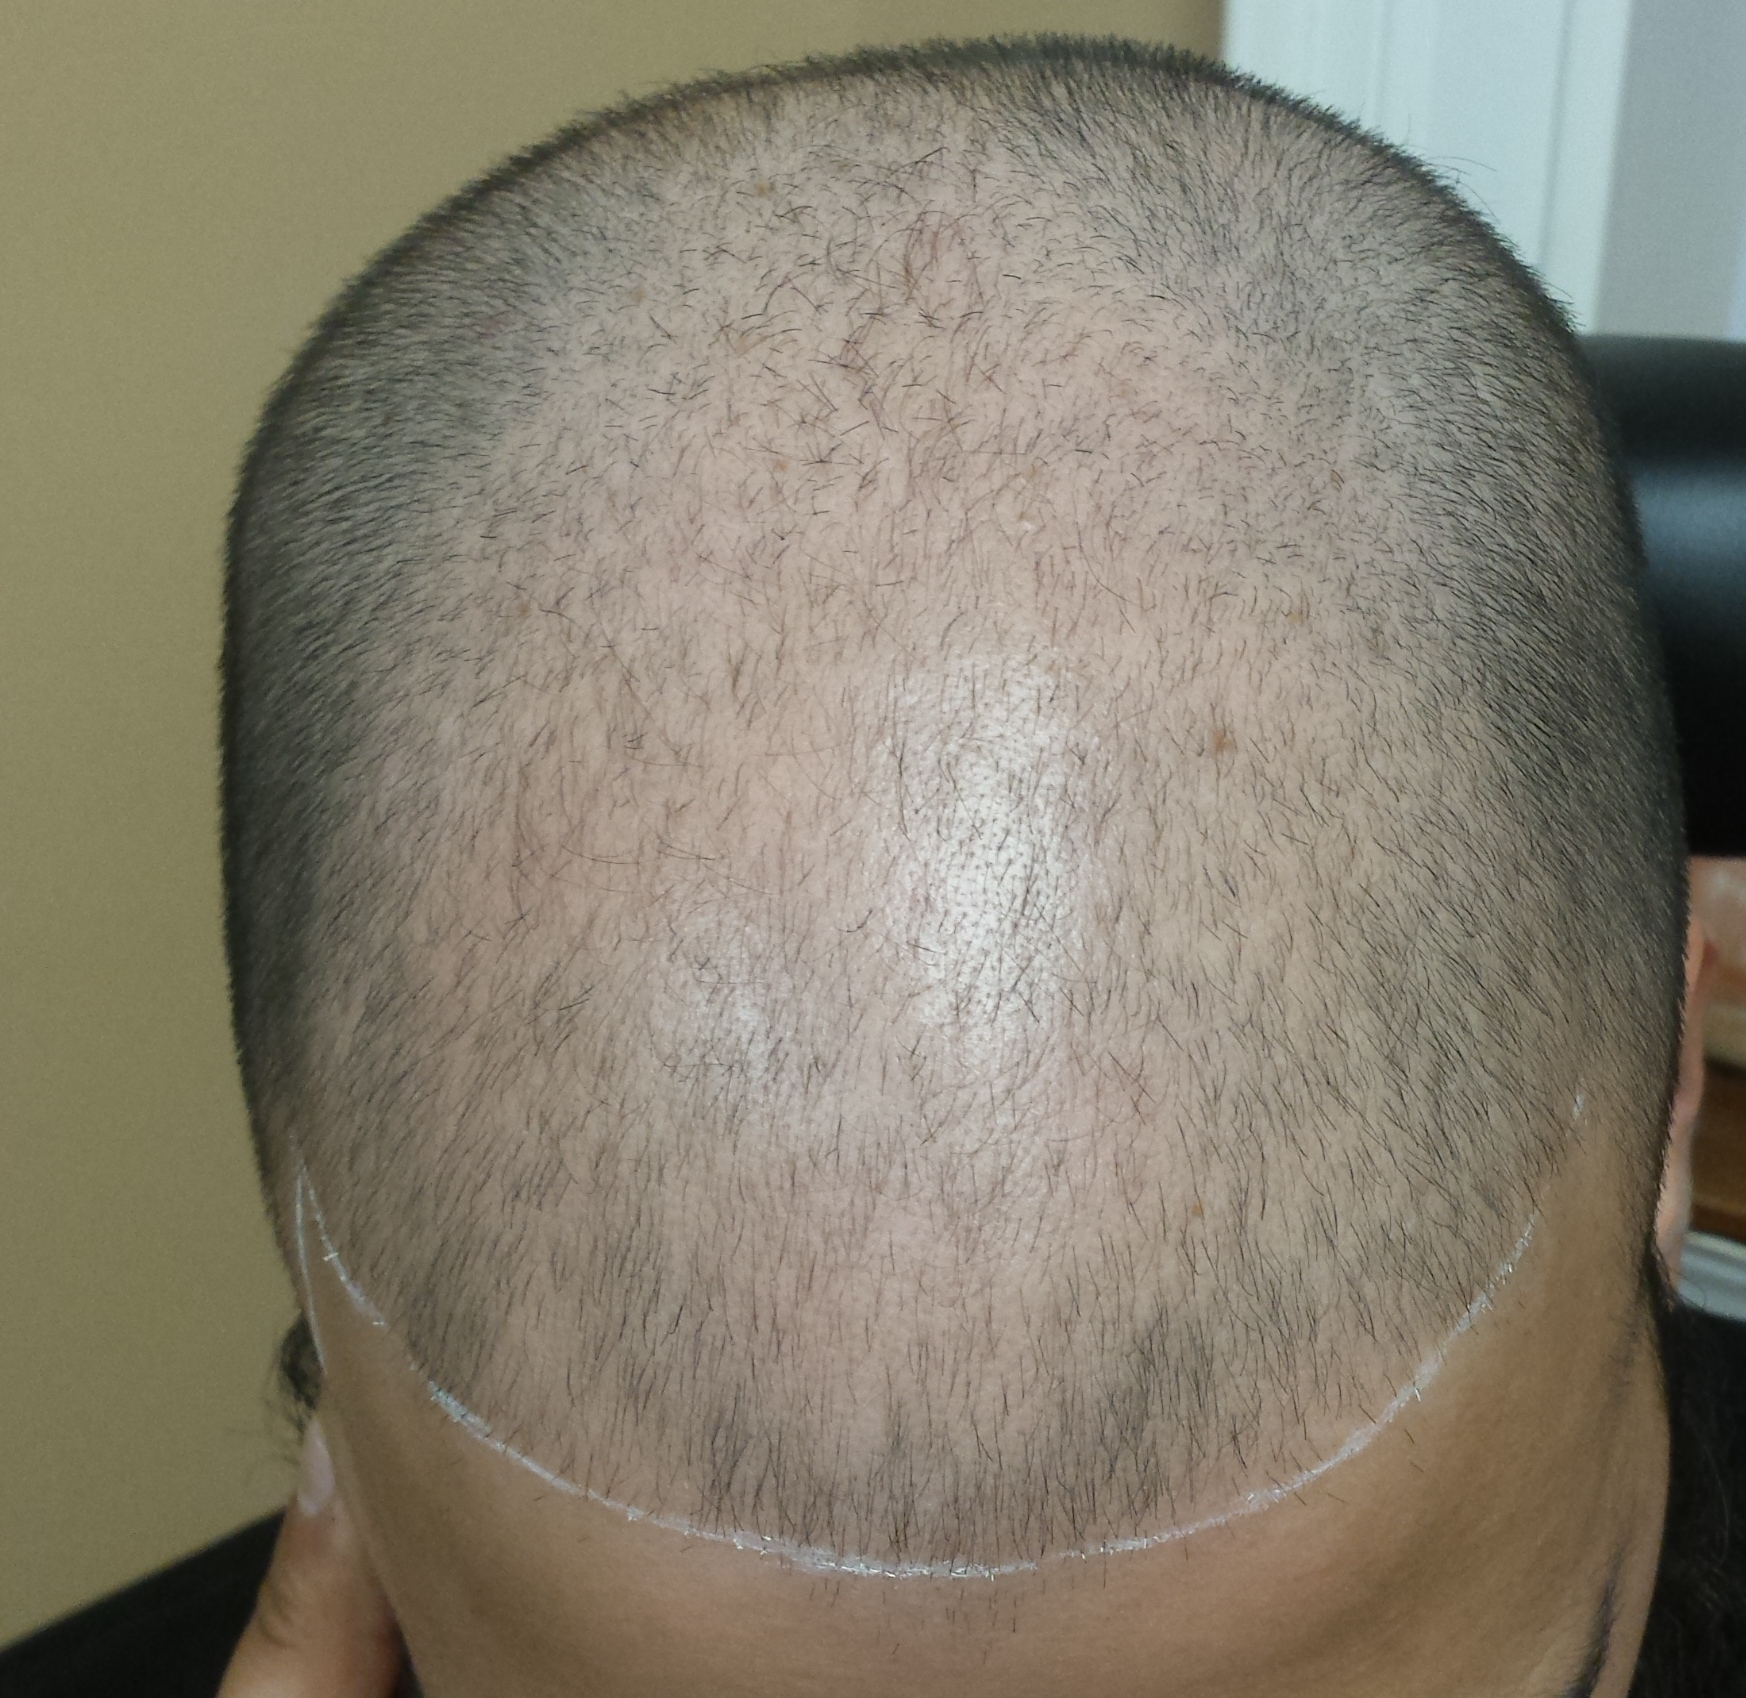 Scalp Micropigmentation can treat typical balding